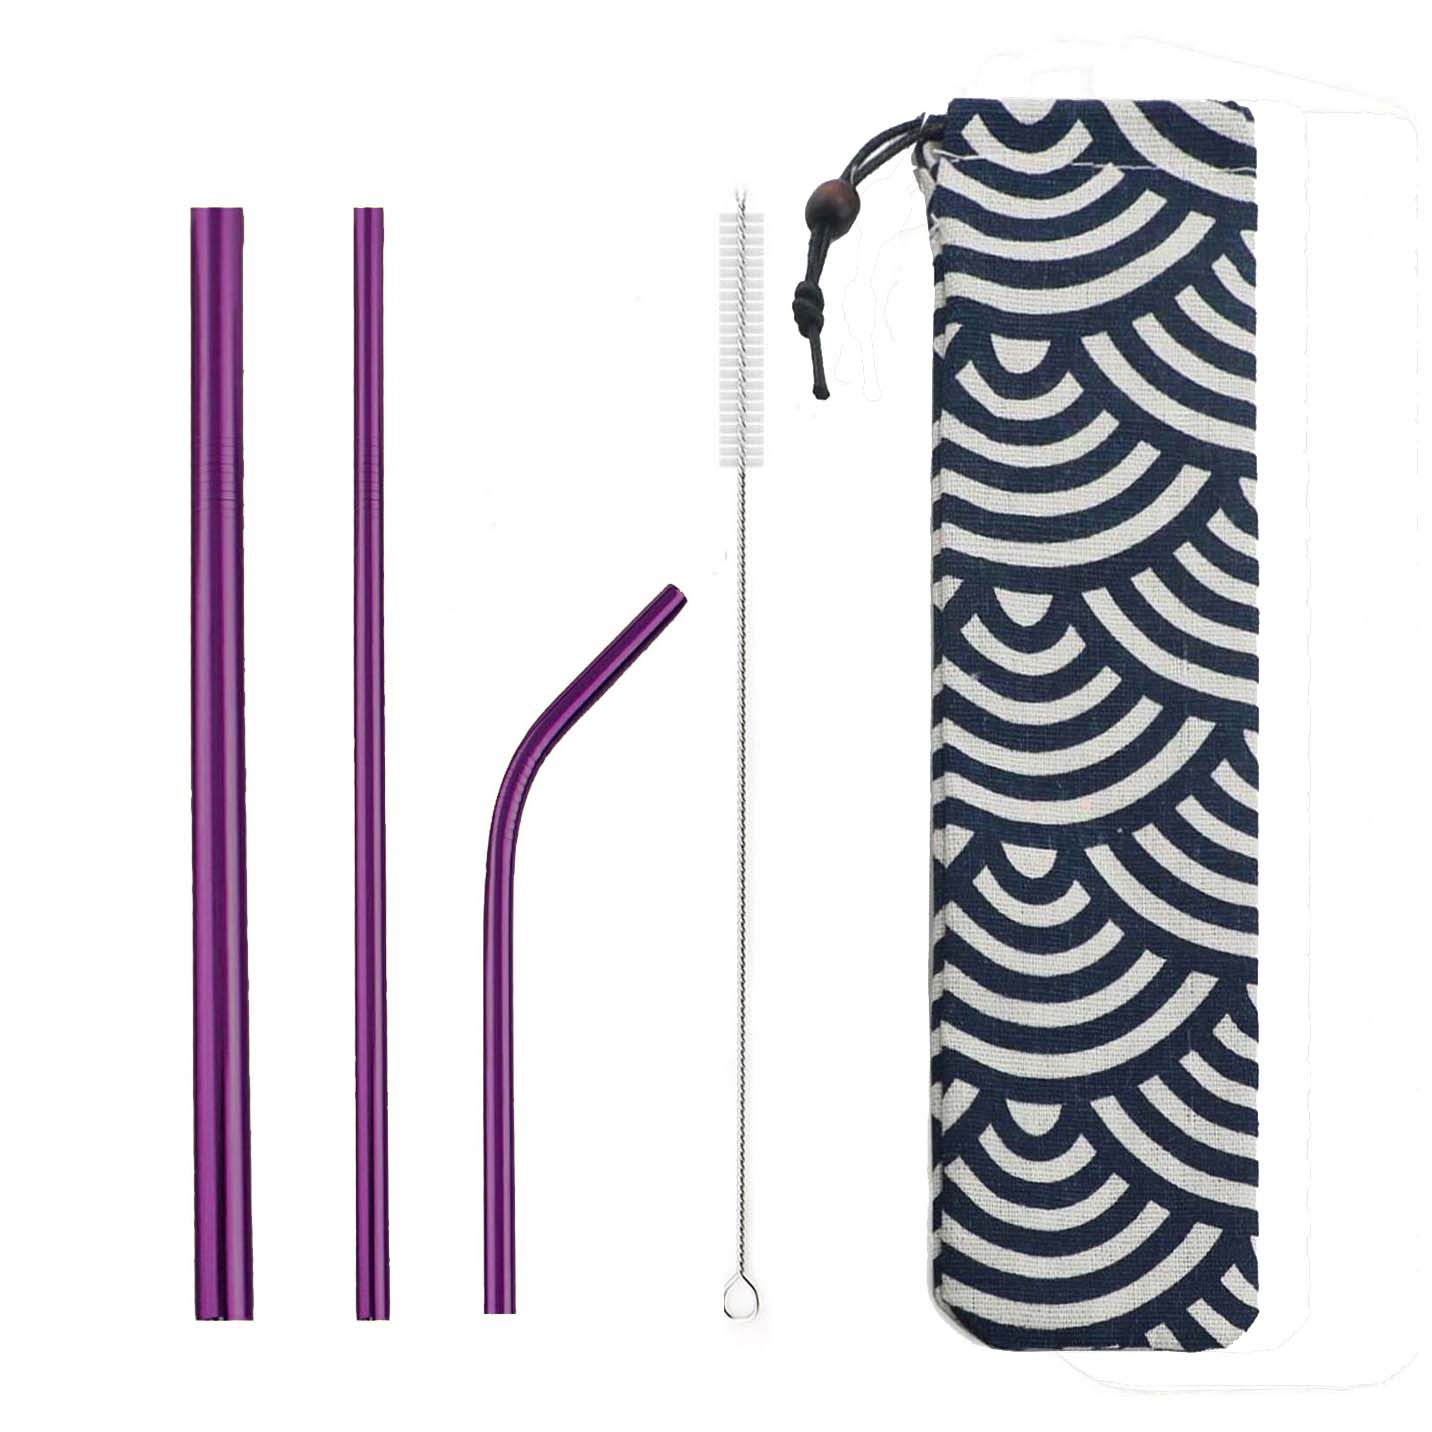 5pcs Reusable 304 Stainless Steel Straw Metal Smoothies